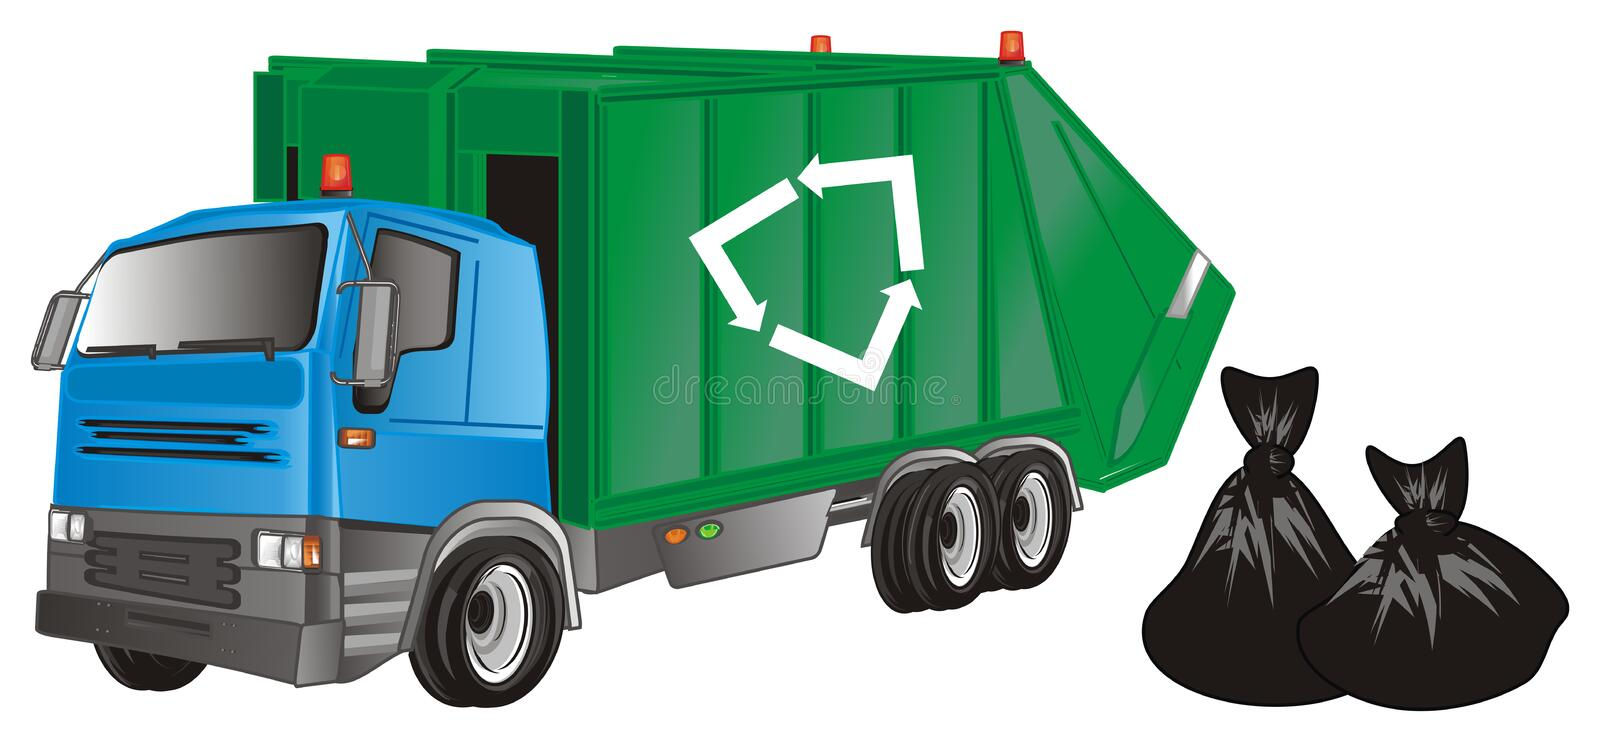 Garbage truck with garbage bags vector illustration